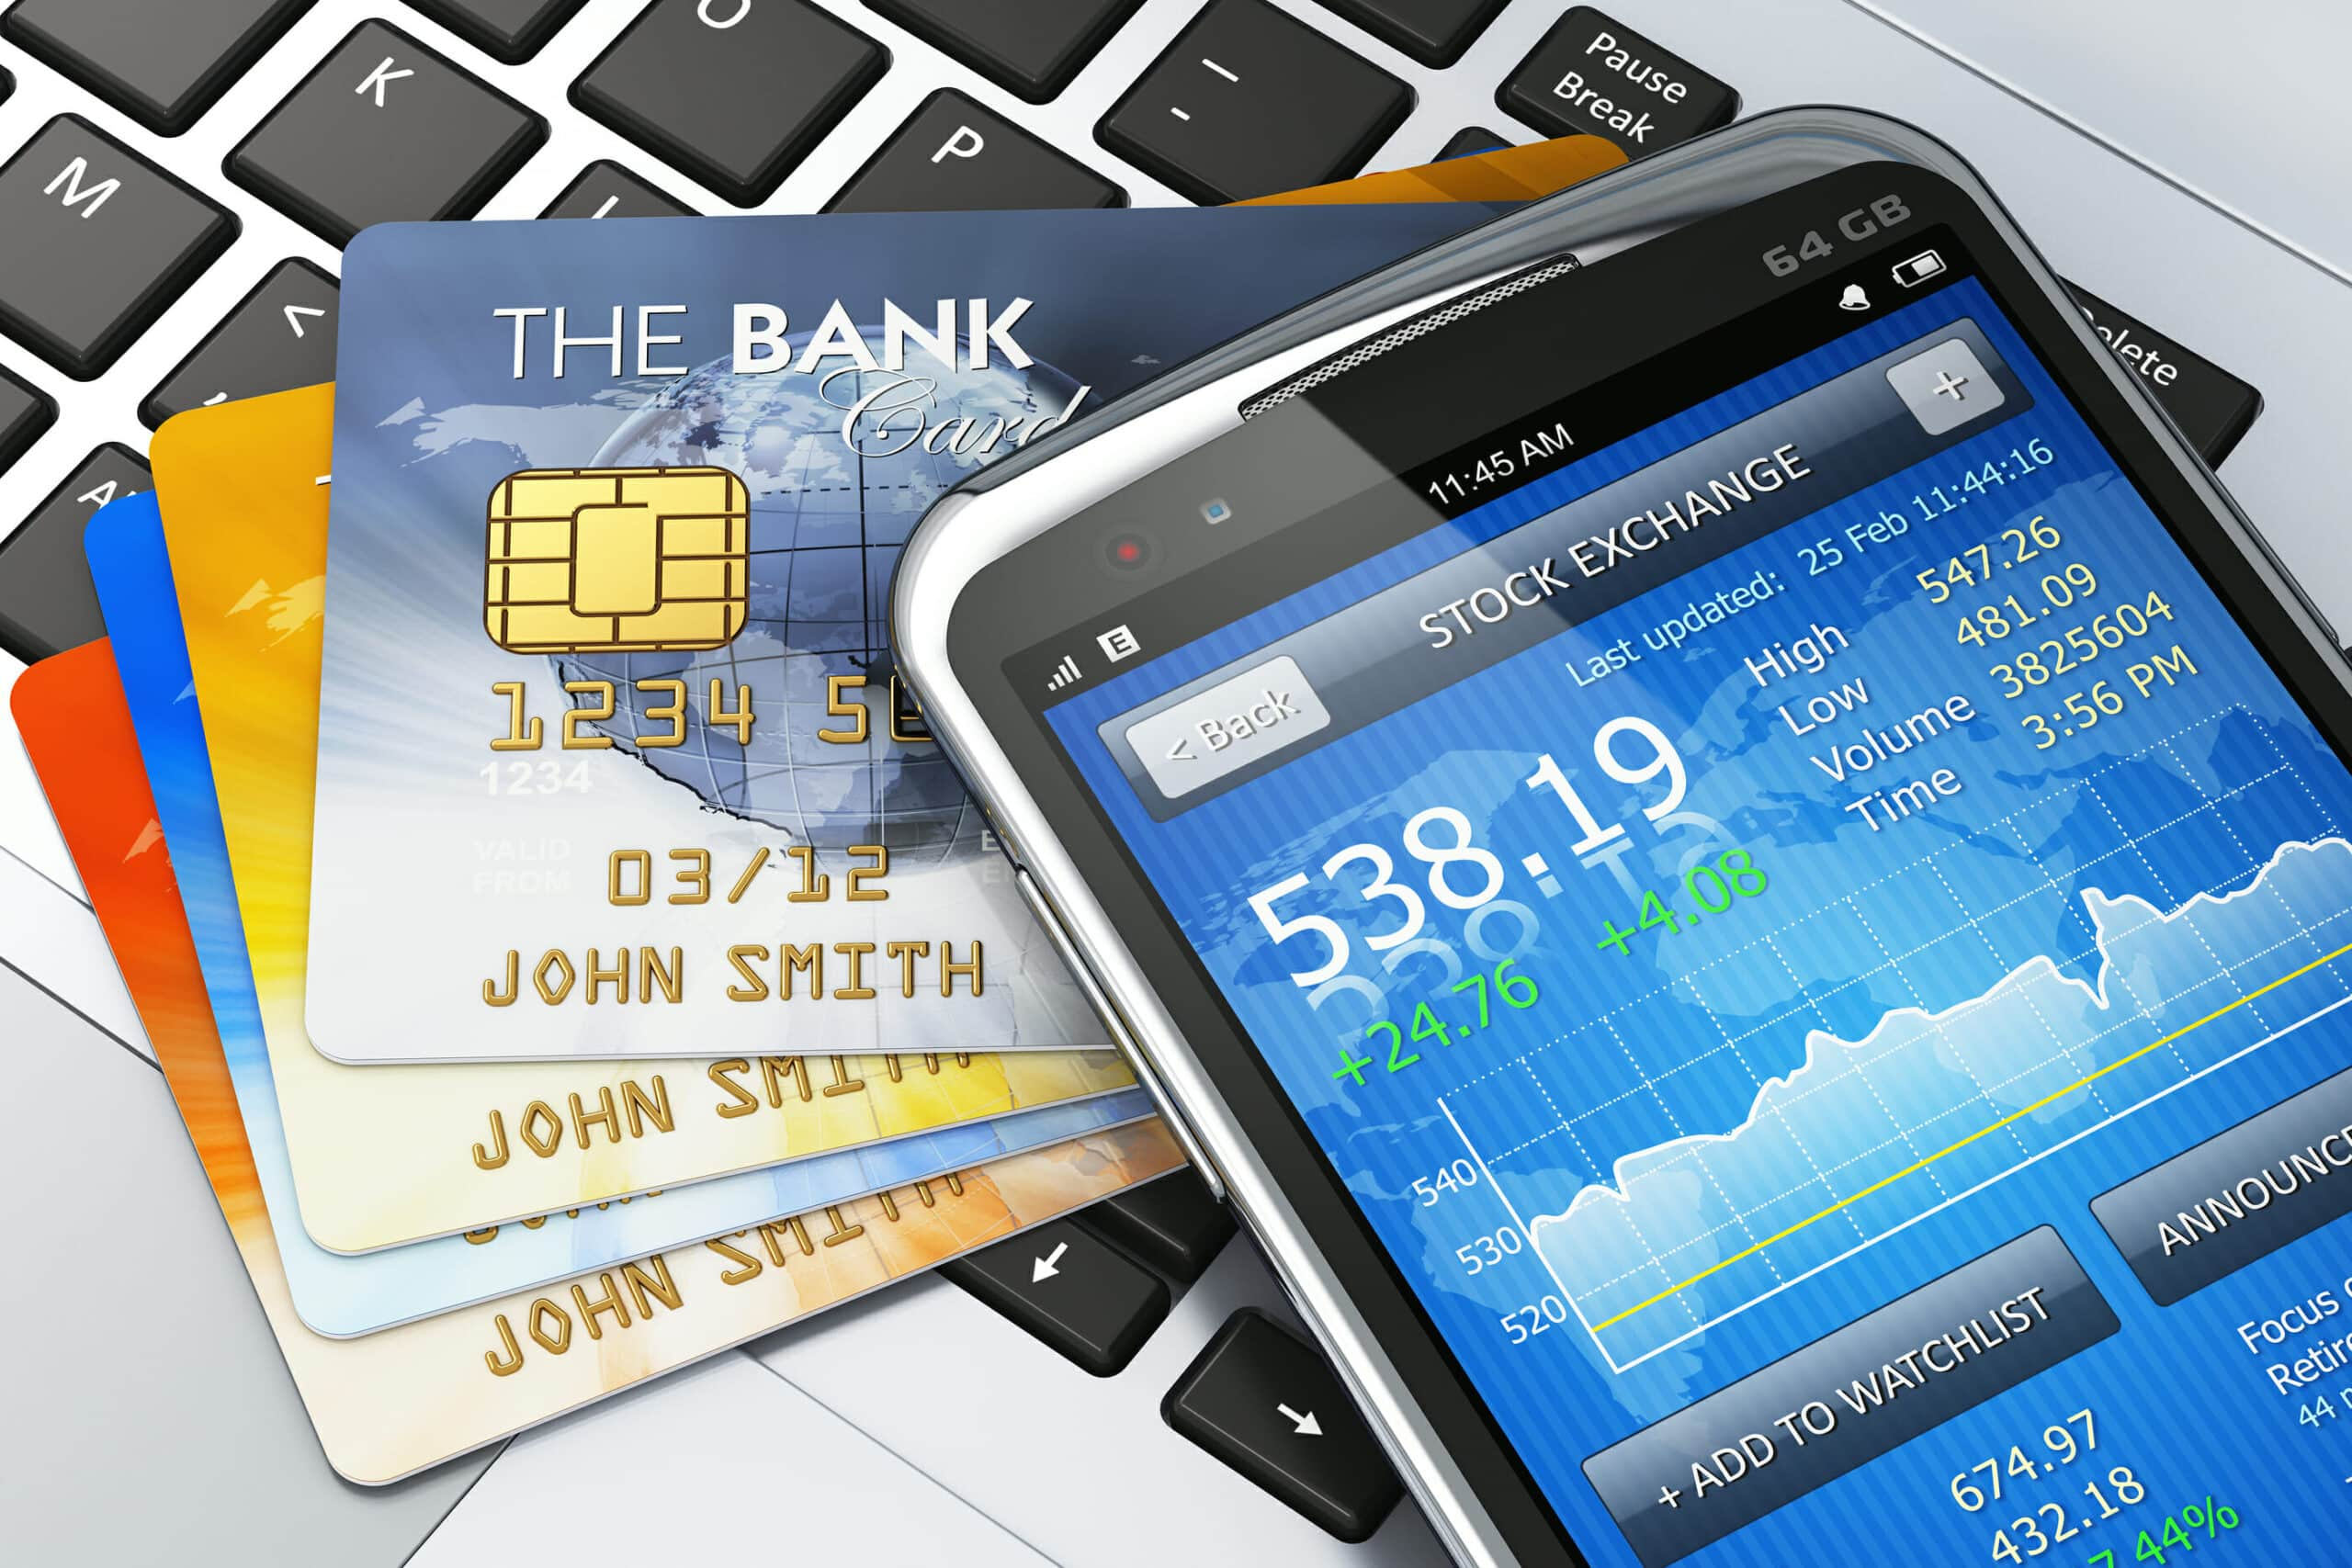 bigstock-Mobile-banking-and-finance-con-41733148